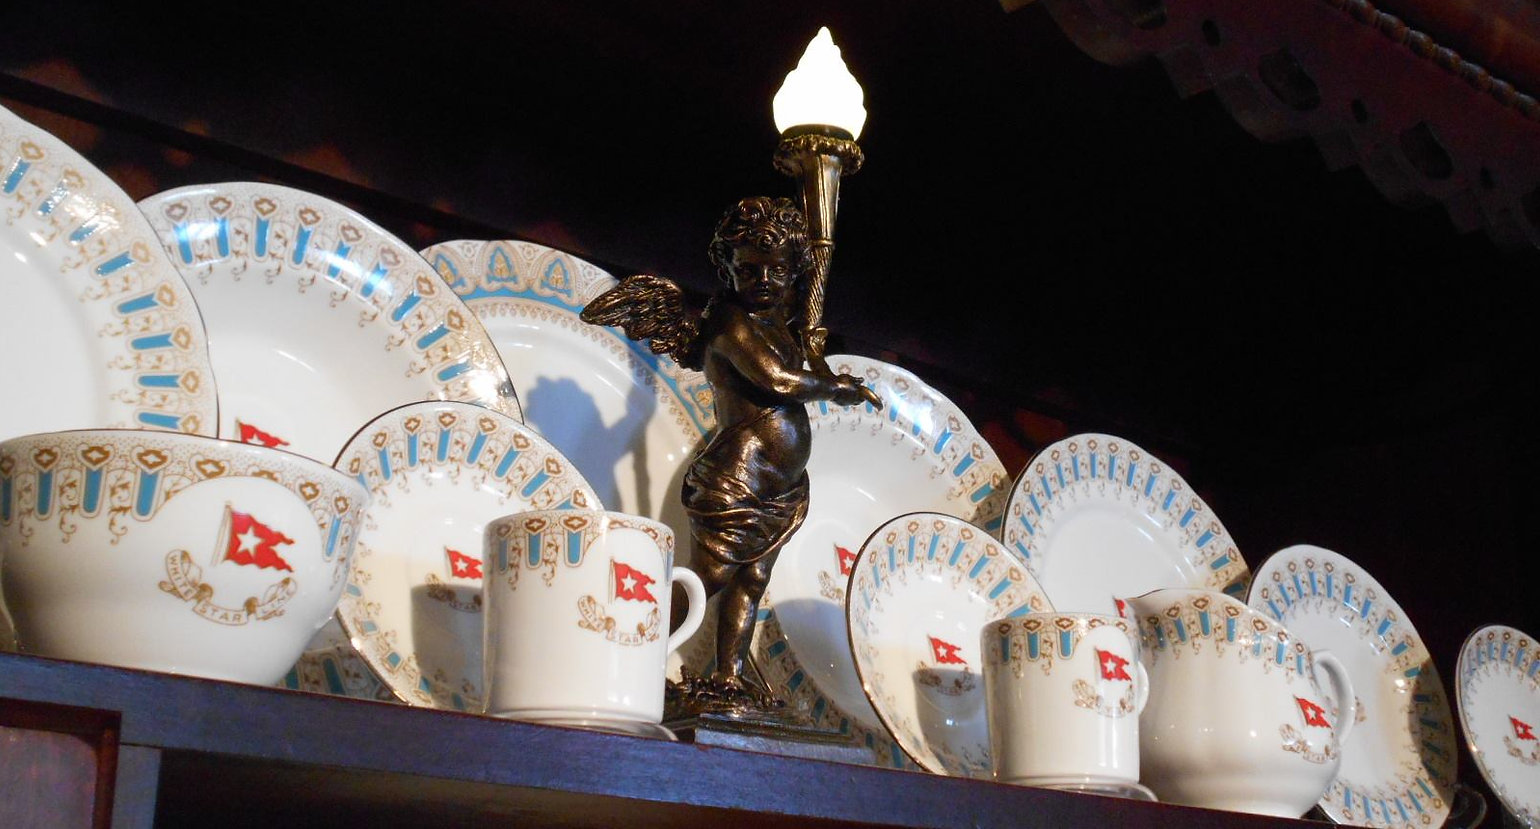 Titanic china collection of Sohny Desrosiers with small scale Tianic cherub replica in the middle.